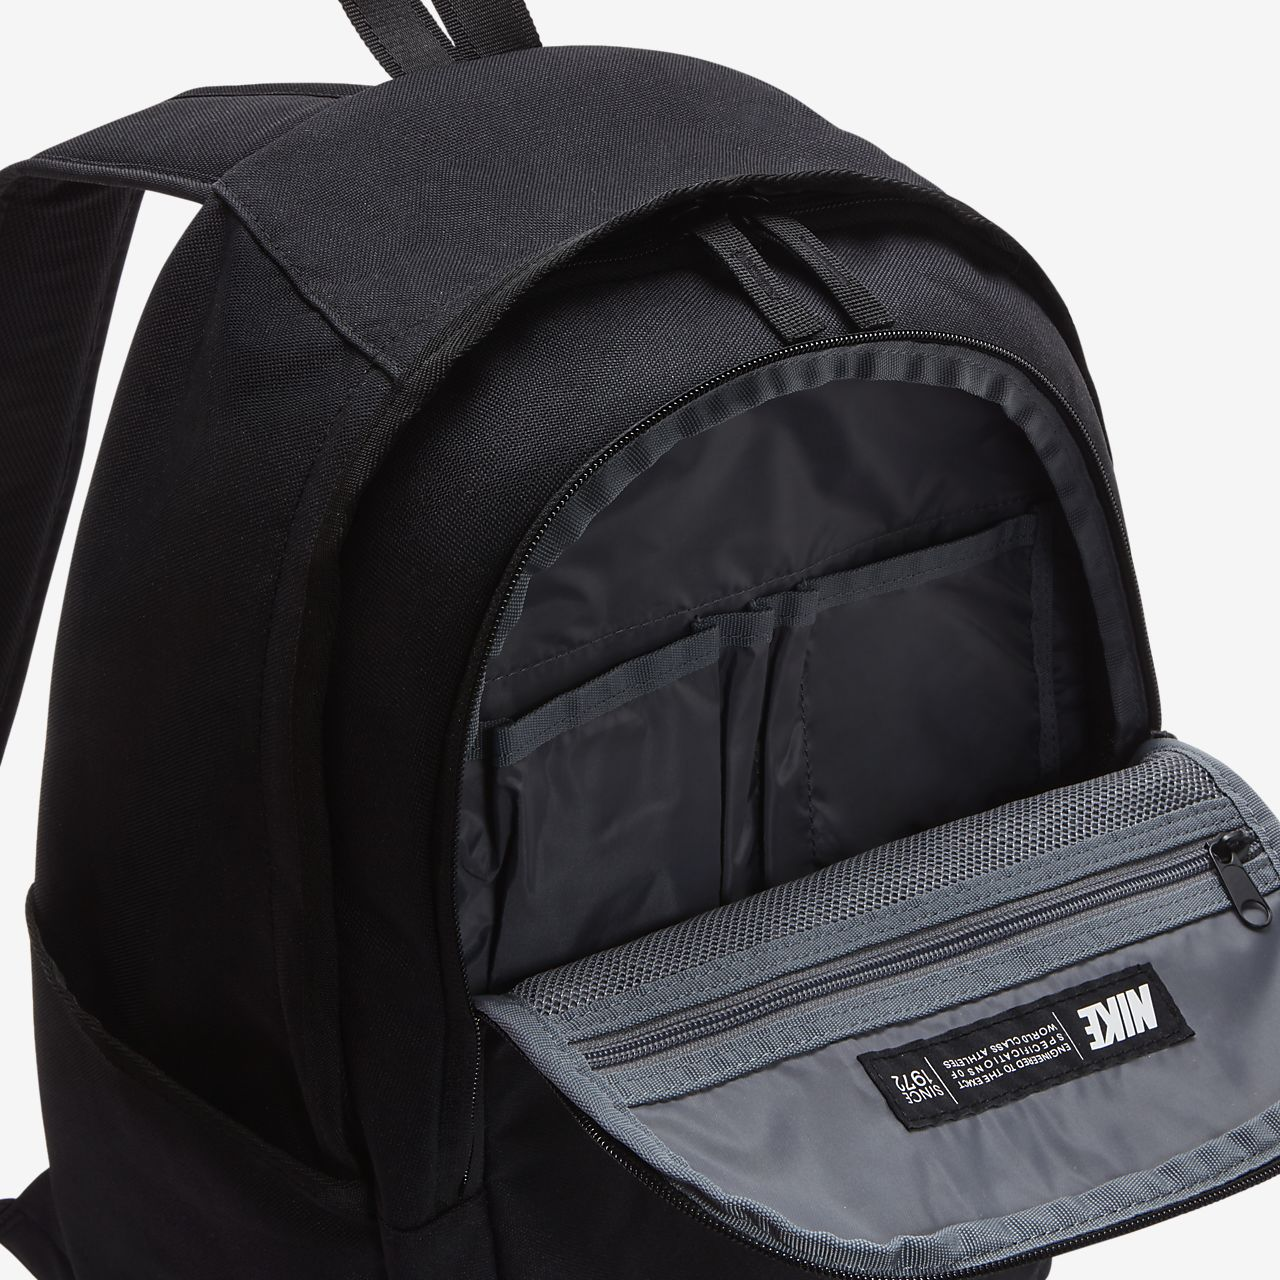 b5d59d37bdd8 Nike All Access Soleday Backpack. Nike.com AU